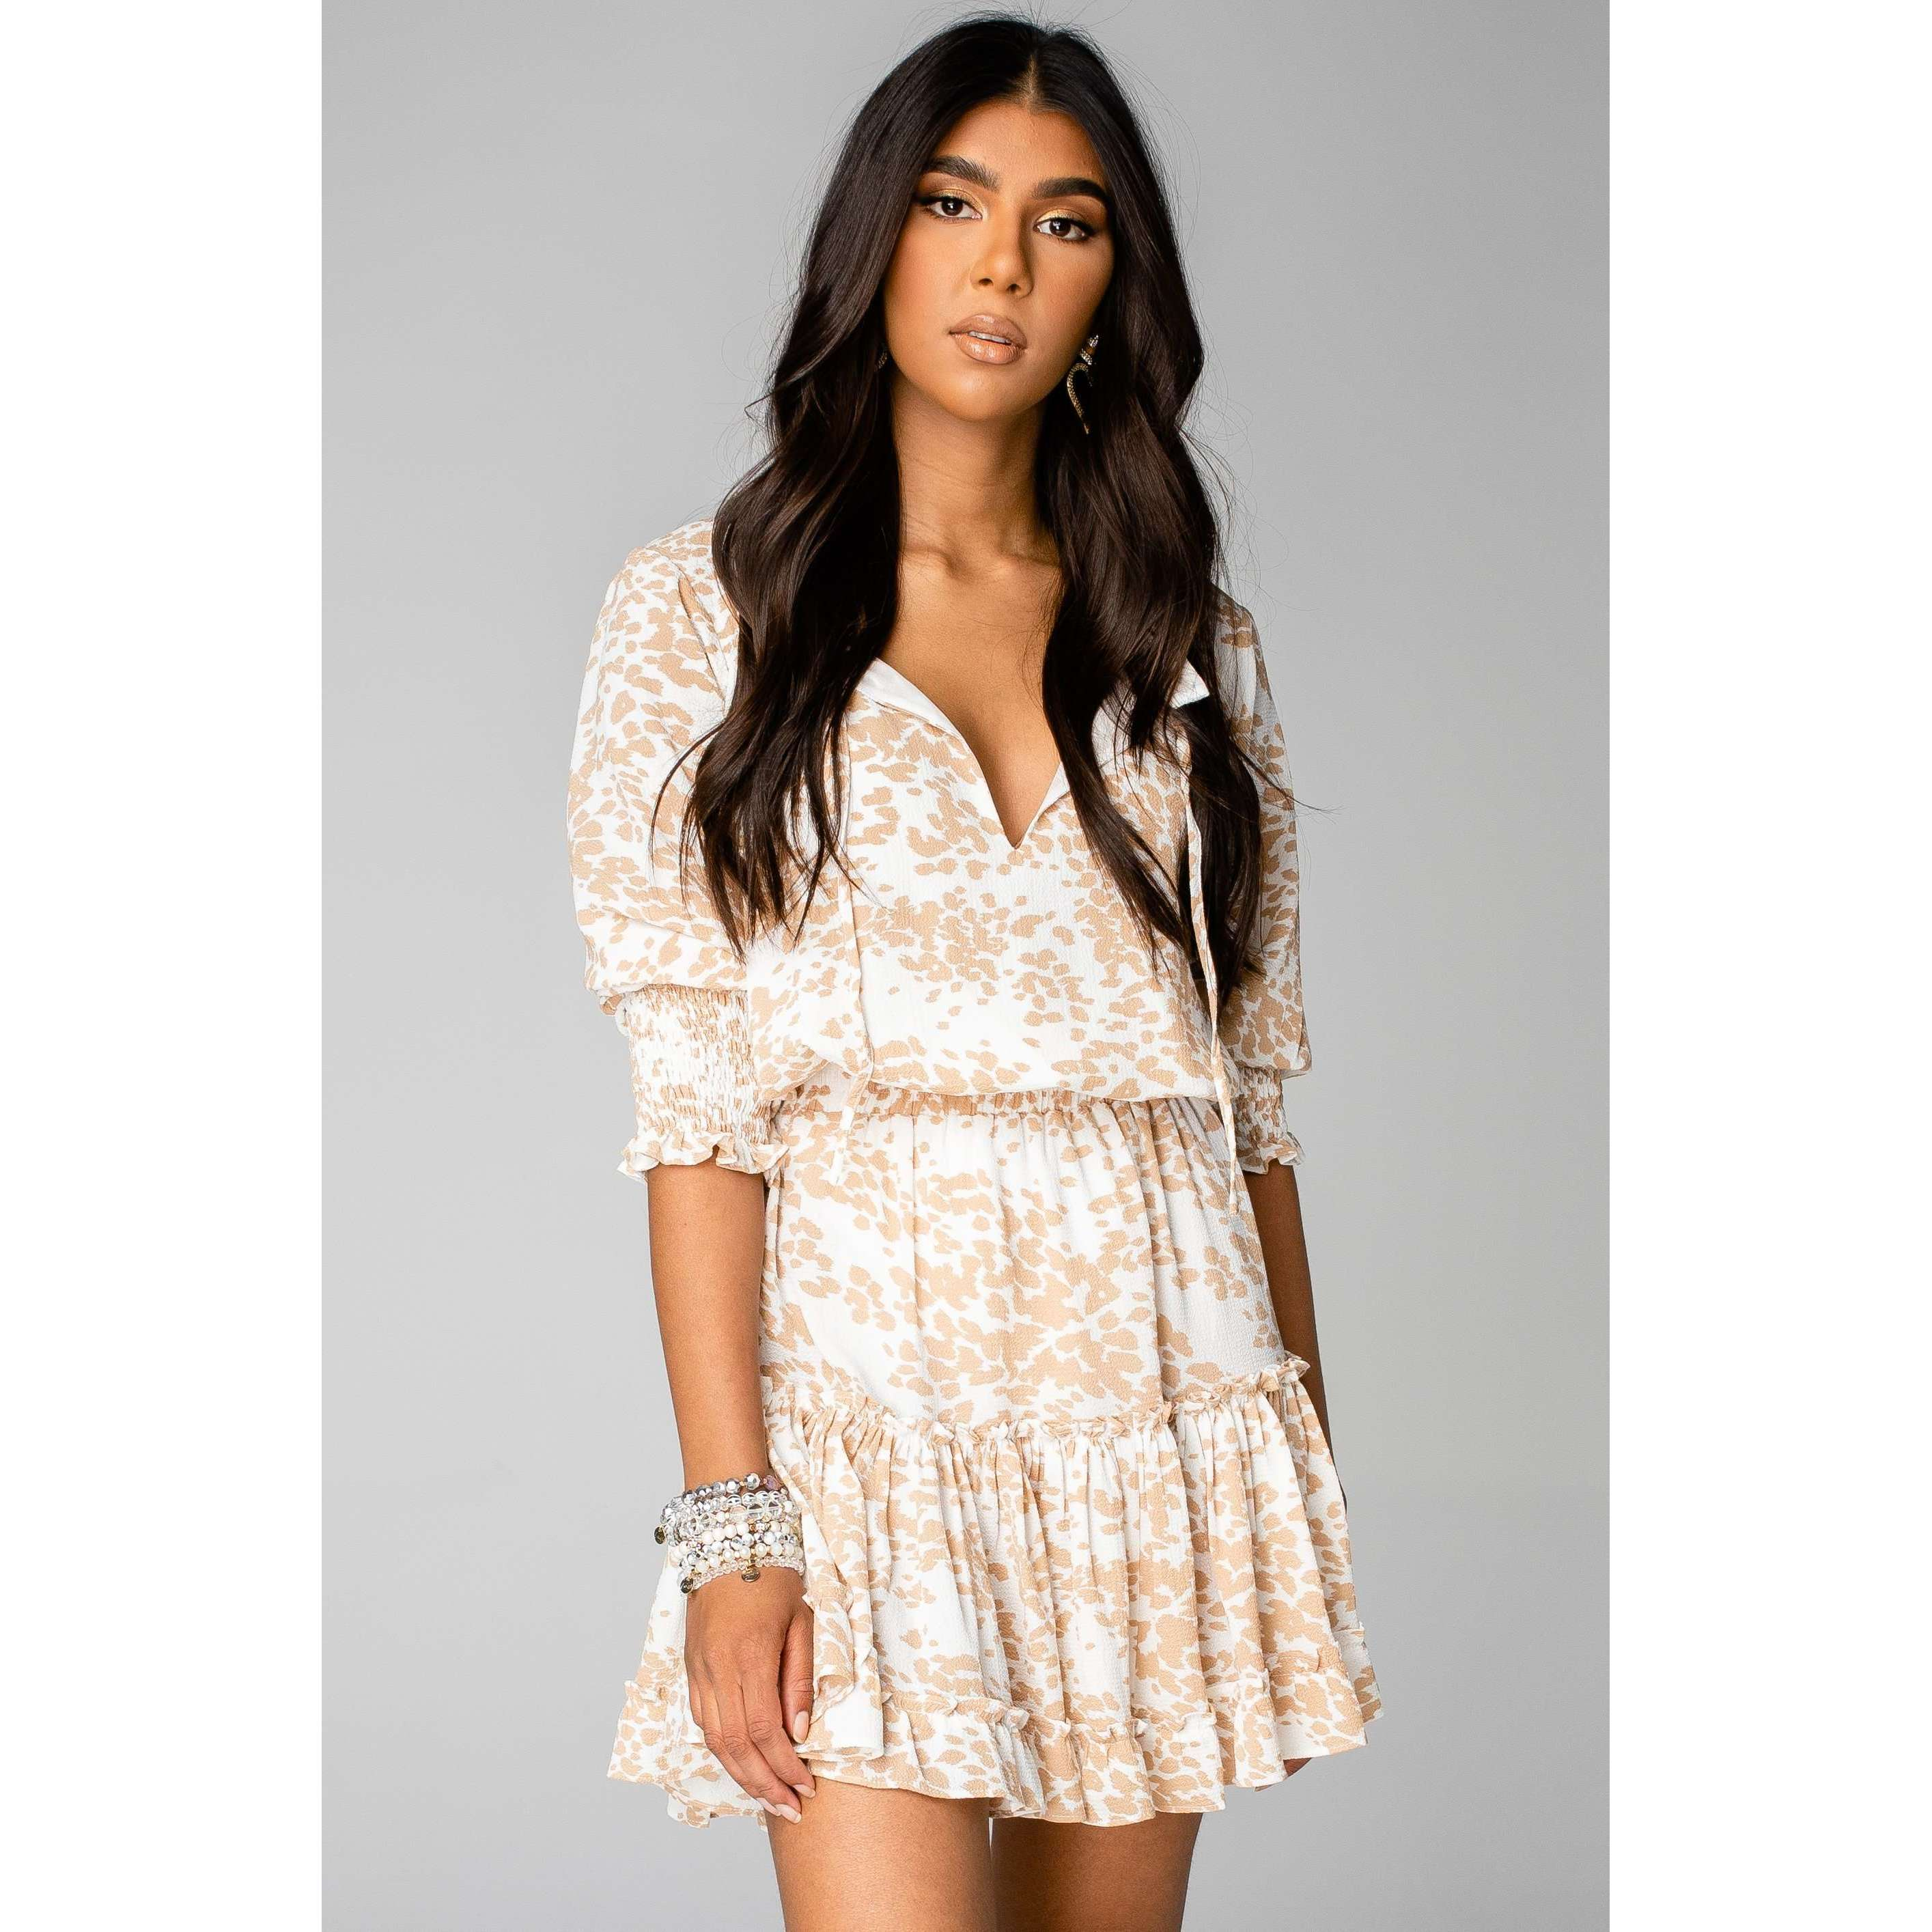 8.28 Boutique:Buddy Love,Buddy Love Bronx Cowhide Dress,Dress